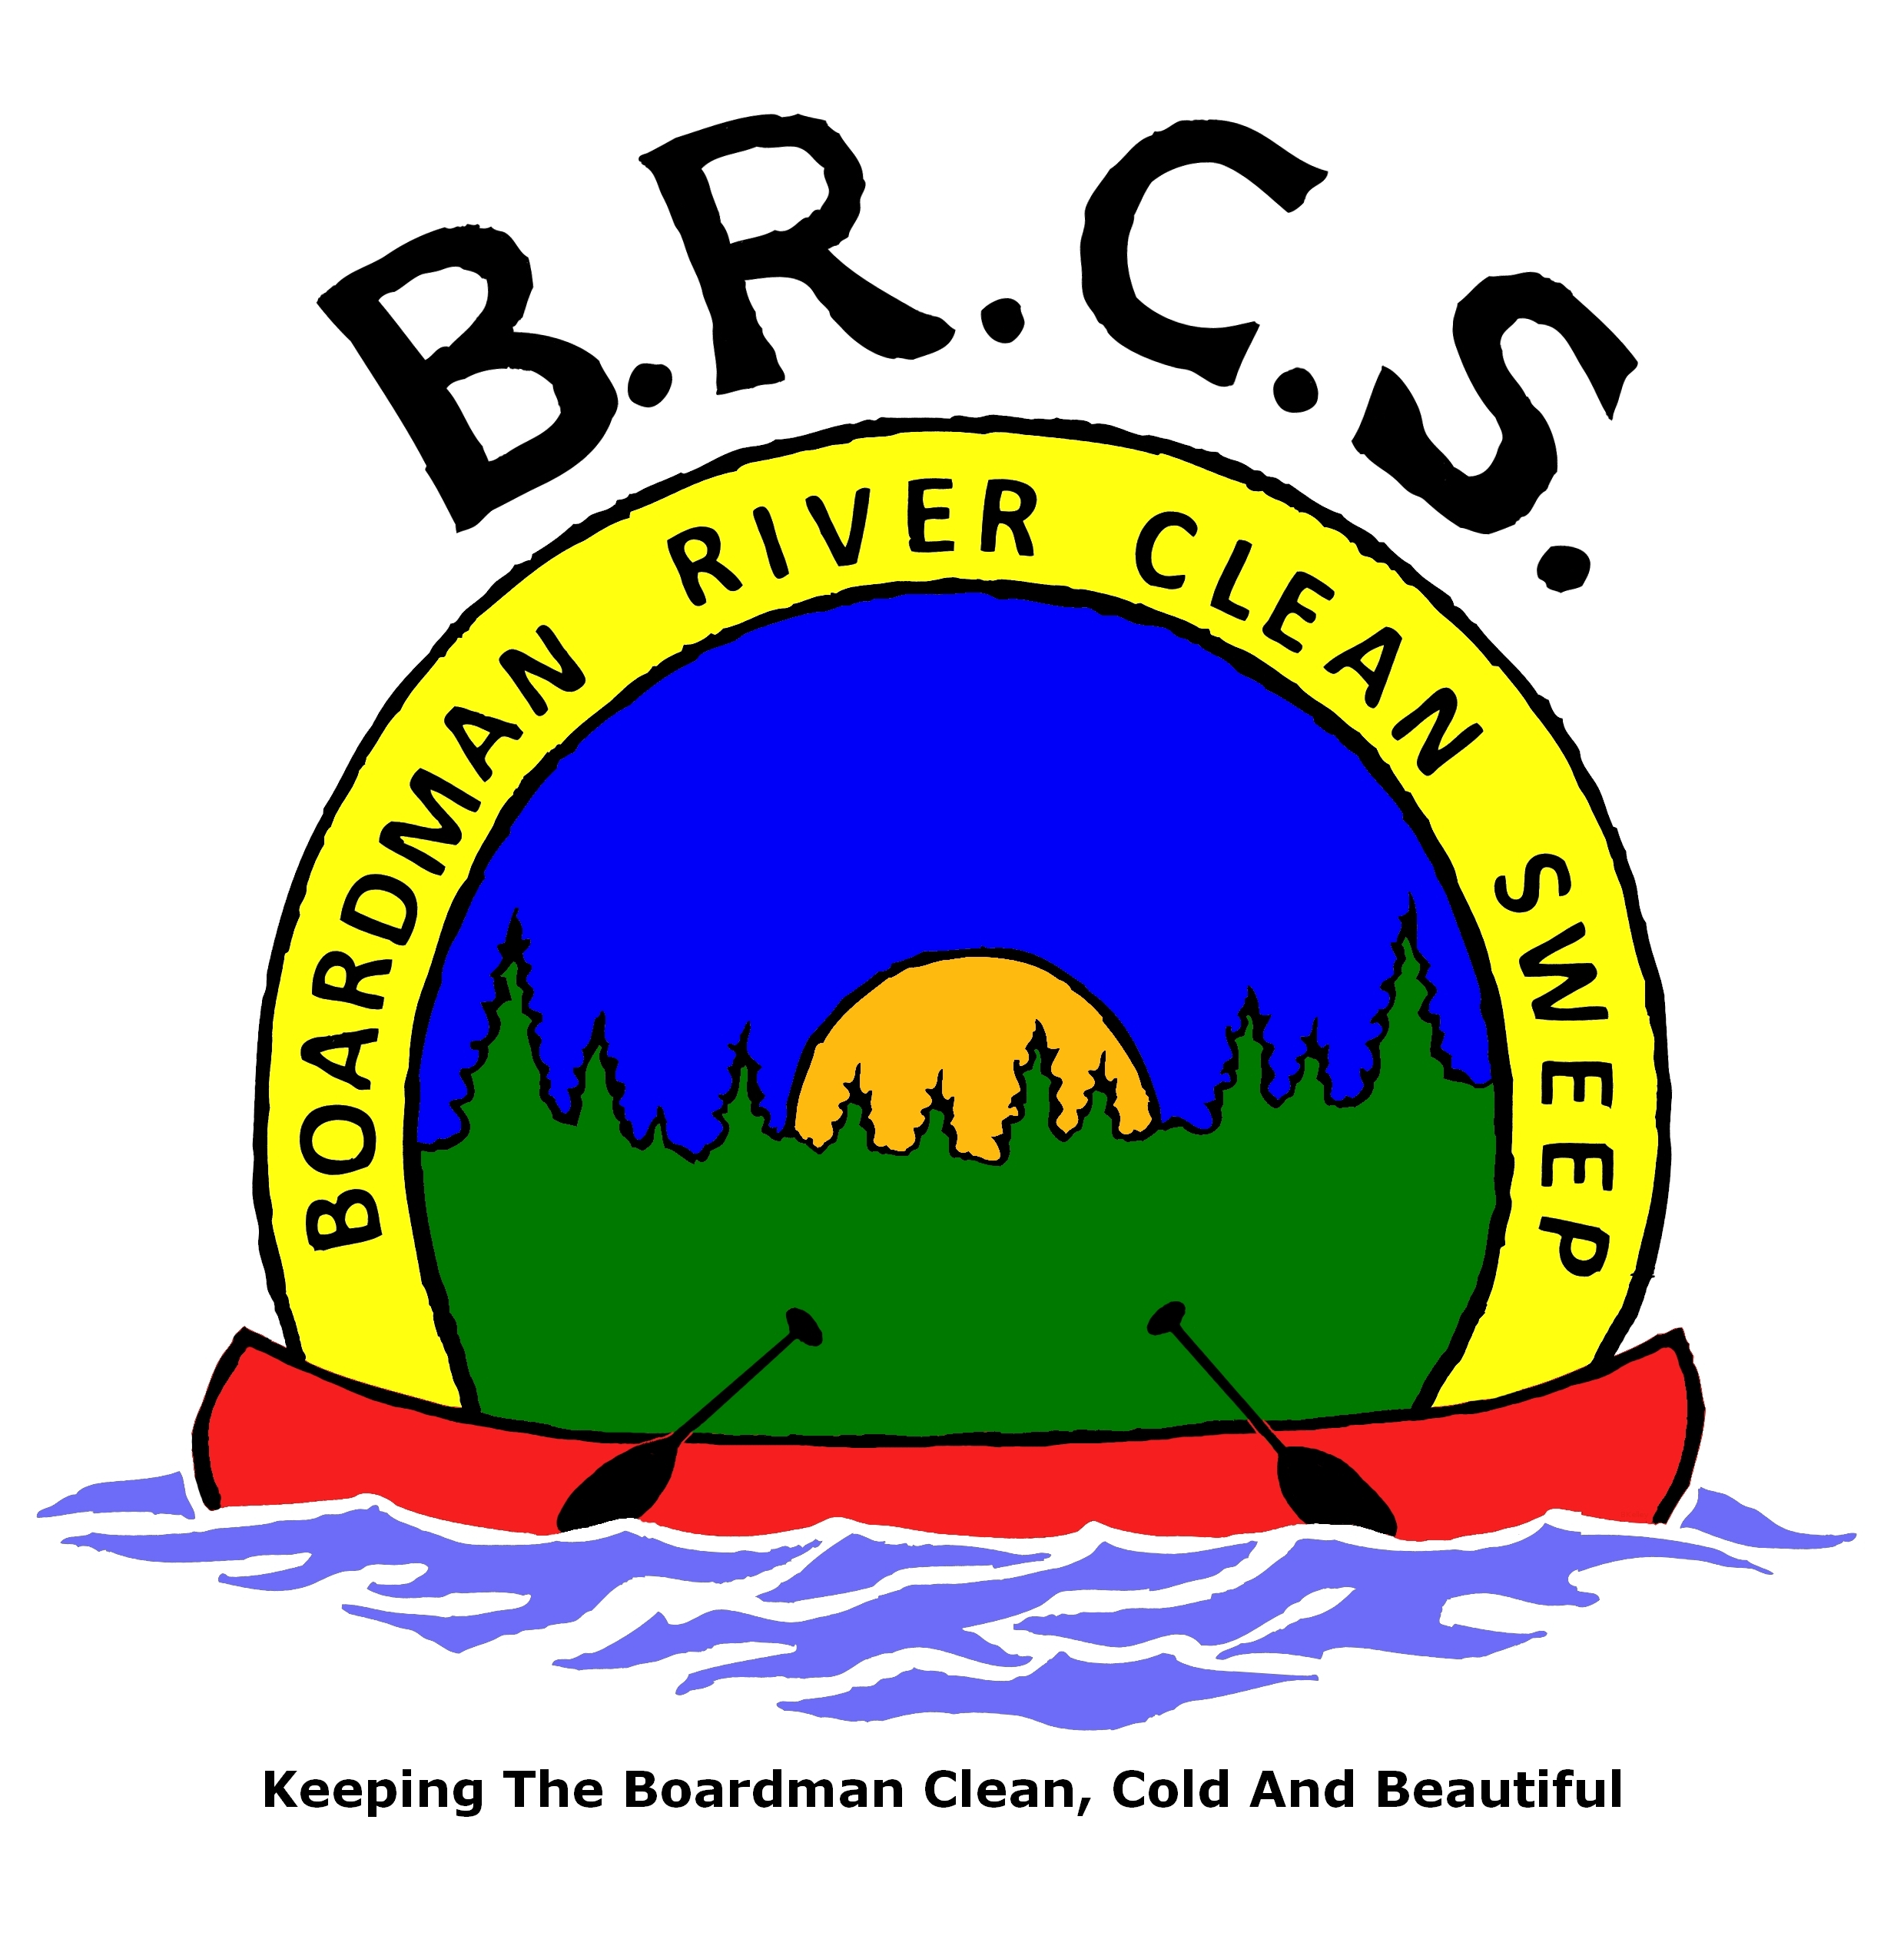 The BRCS is a 501(c)(3) Michigan Non-Profit Corporation dedicated to the preservation and continued health of the Boardman River.